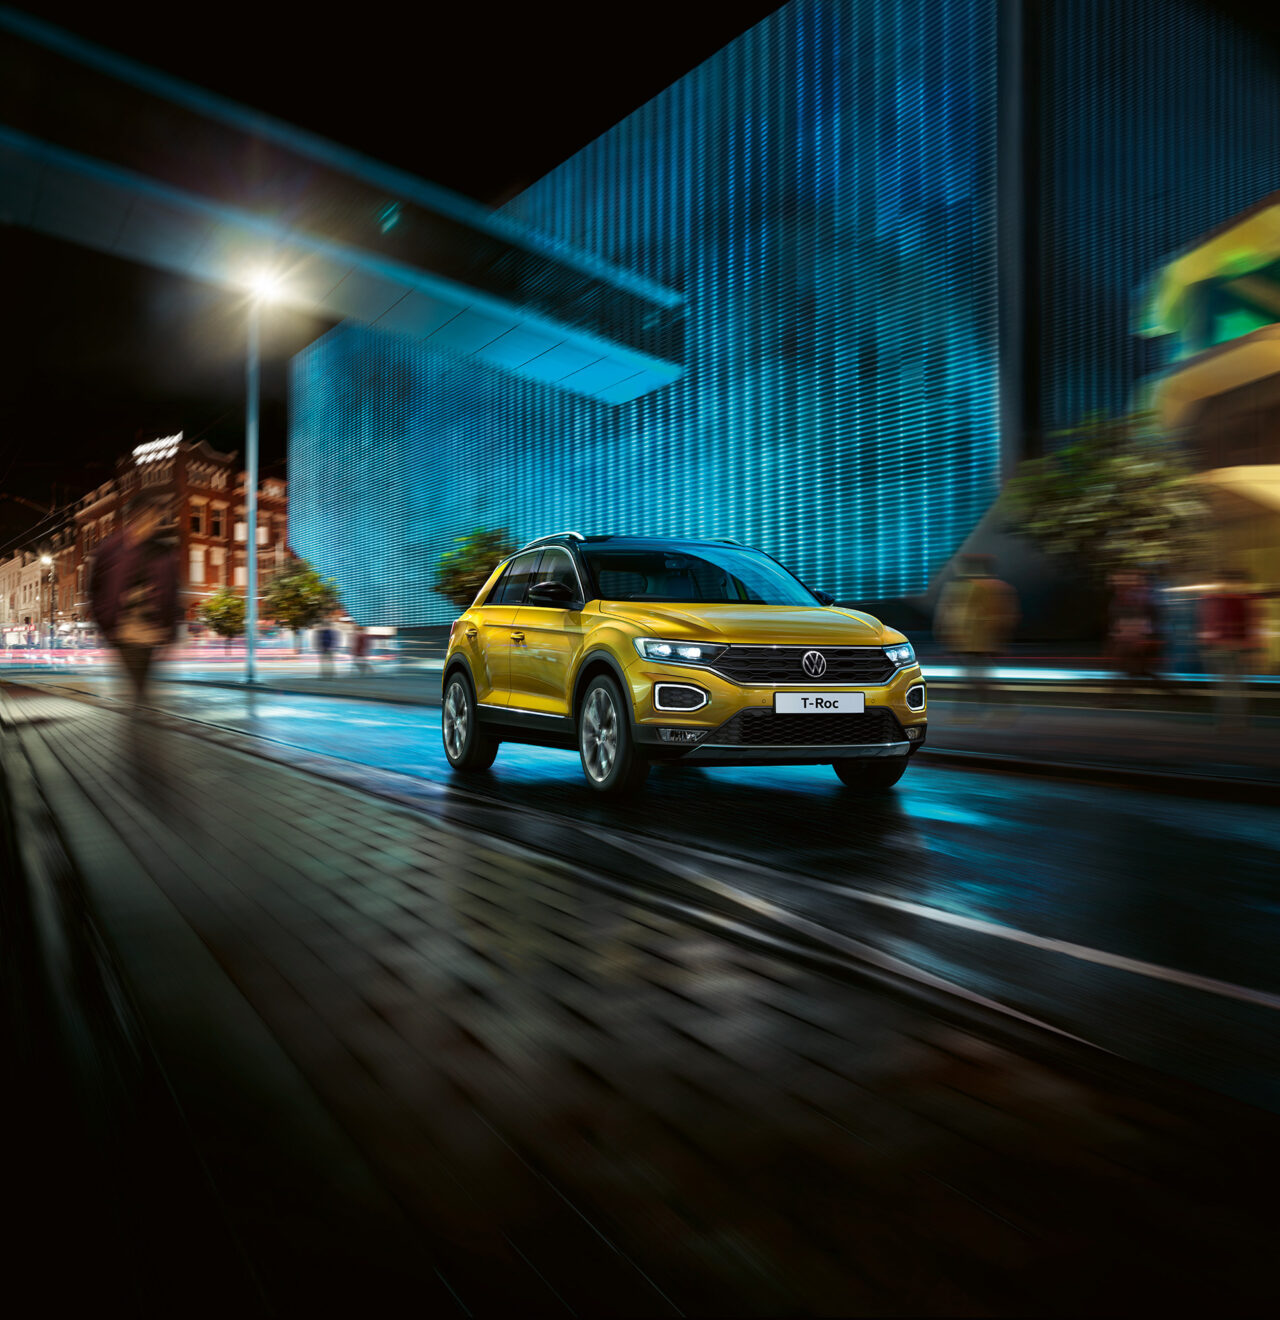 https://www.theumhlangamagazine.co.za/wp-content/uploads/VW-T-ROC-TC0283-RGB-LR-Yellow-1280x1320.jpg